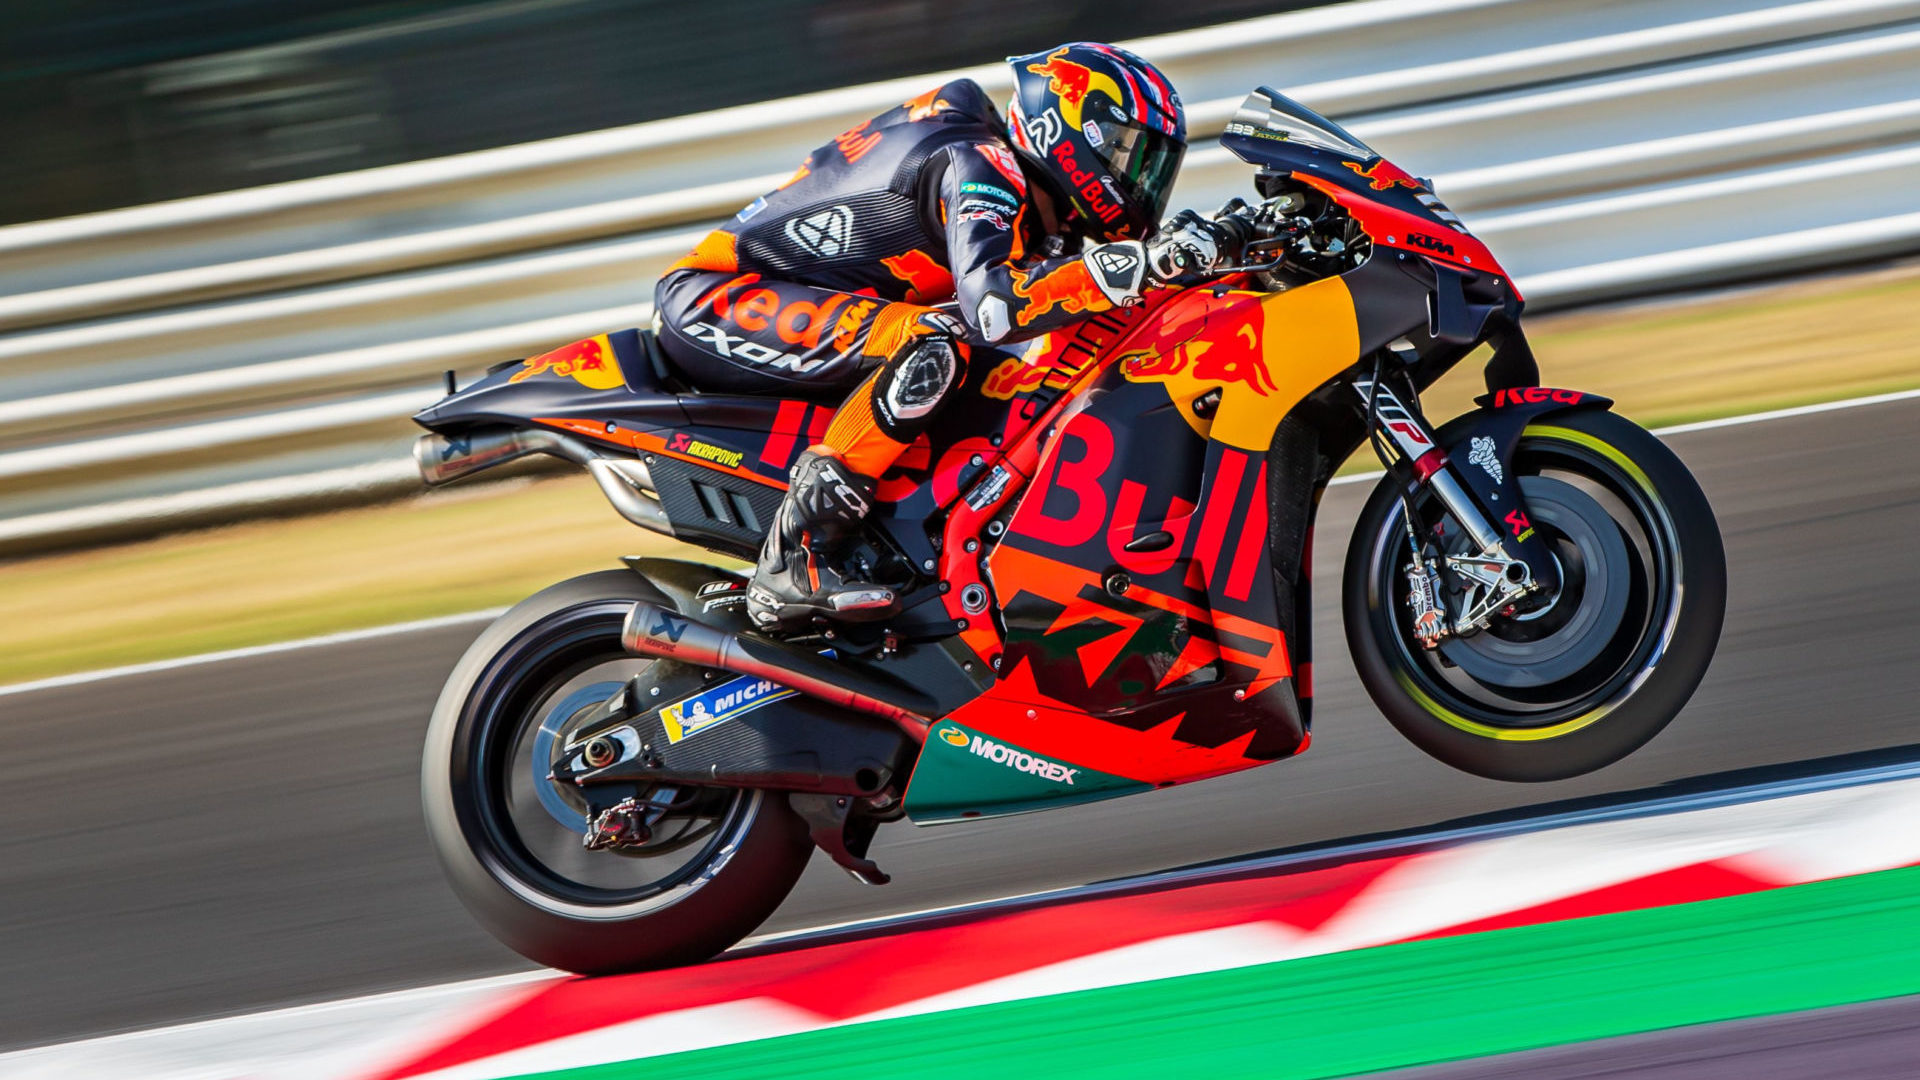 Brad Binder (33) on his Red Bull KTM RC 16 MotoGP racebike. Photo by Polarity Photo, courtesy KTM.